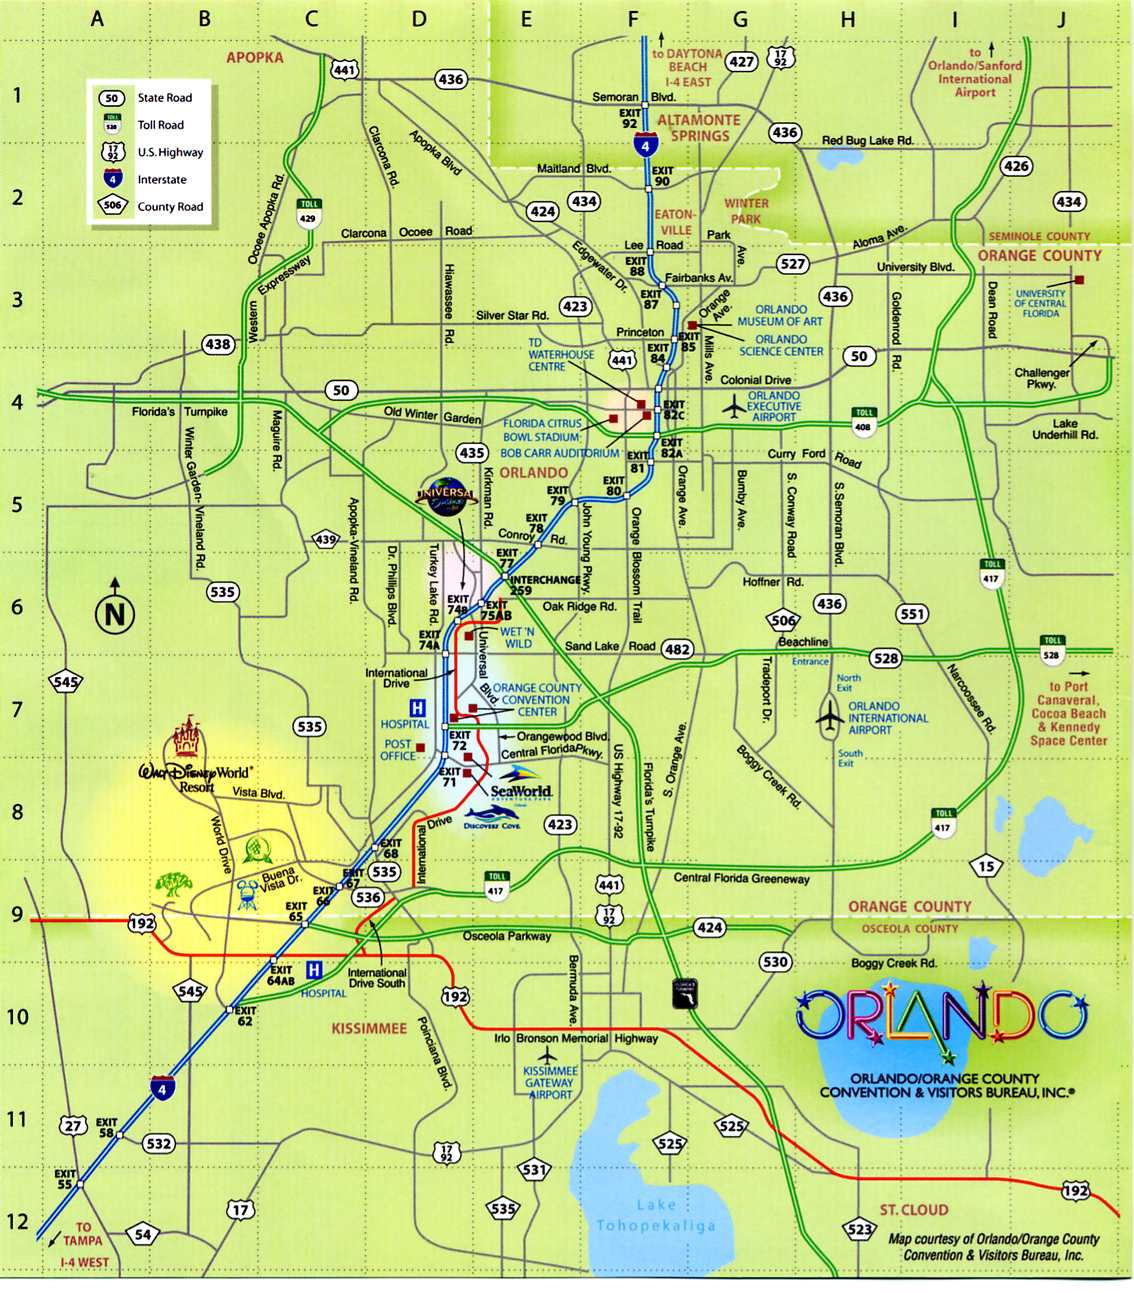 Hair Style ideas – Orlando Florida Tourist Attractions Map